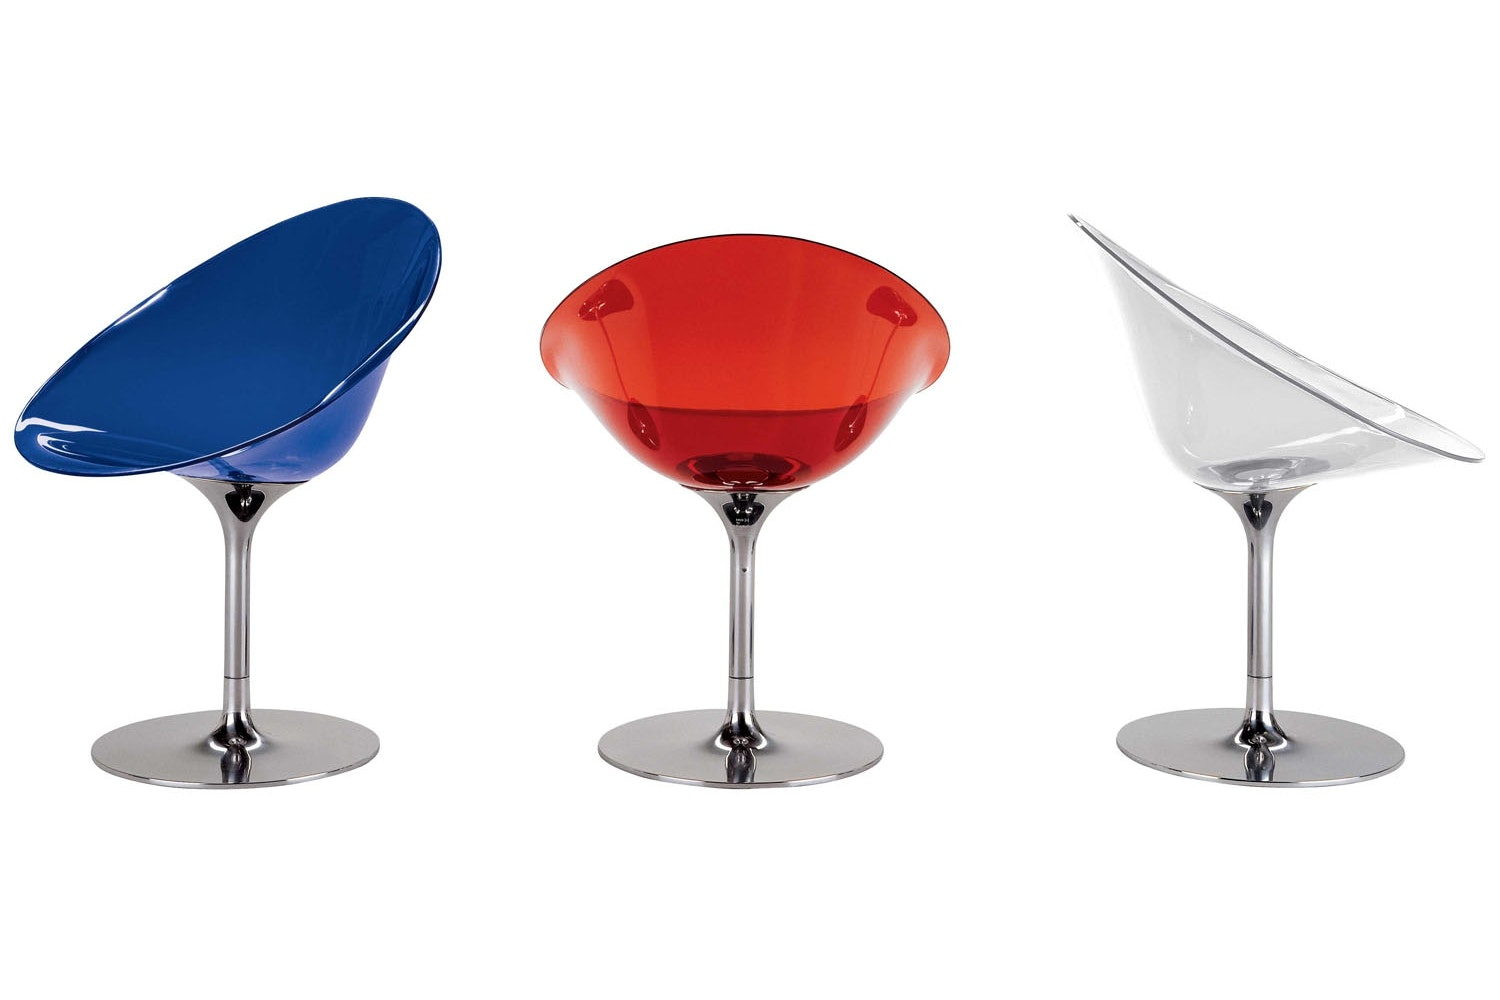 Ero|S| Swivel Chair by Philippe Starck for Kartell